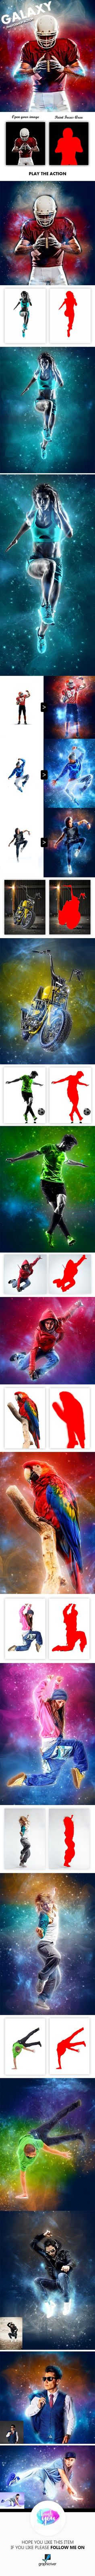 Galaxy Photoshop Action - Photo Effects Actions